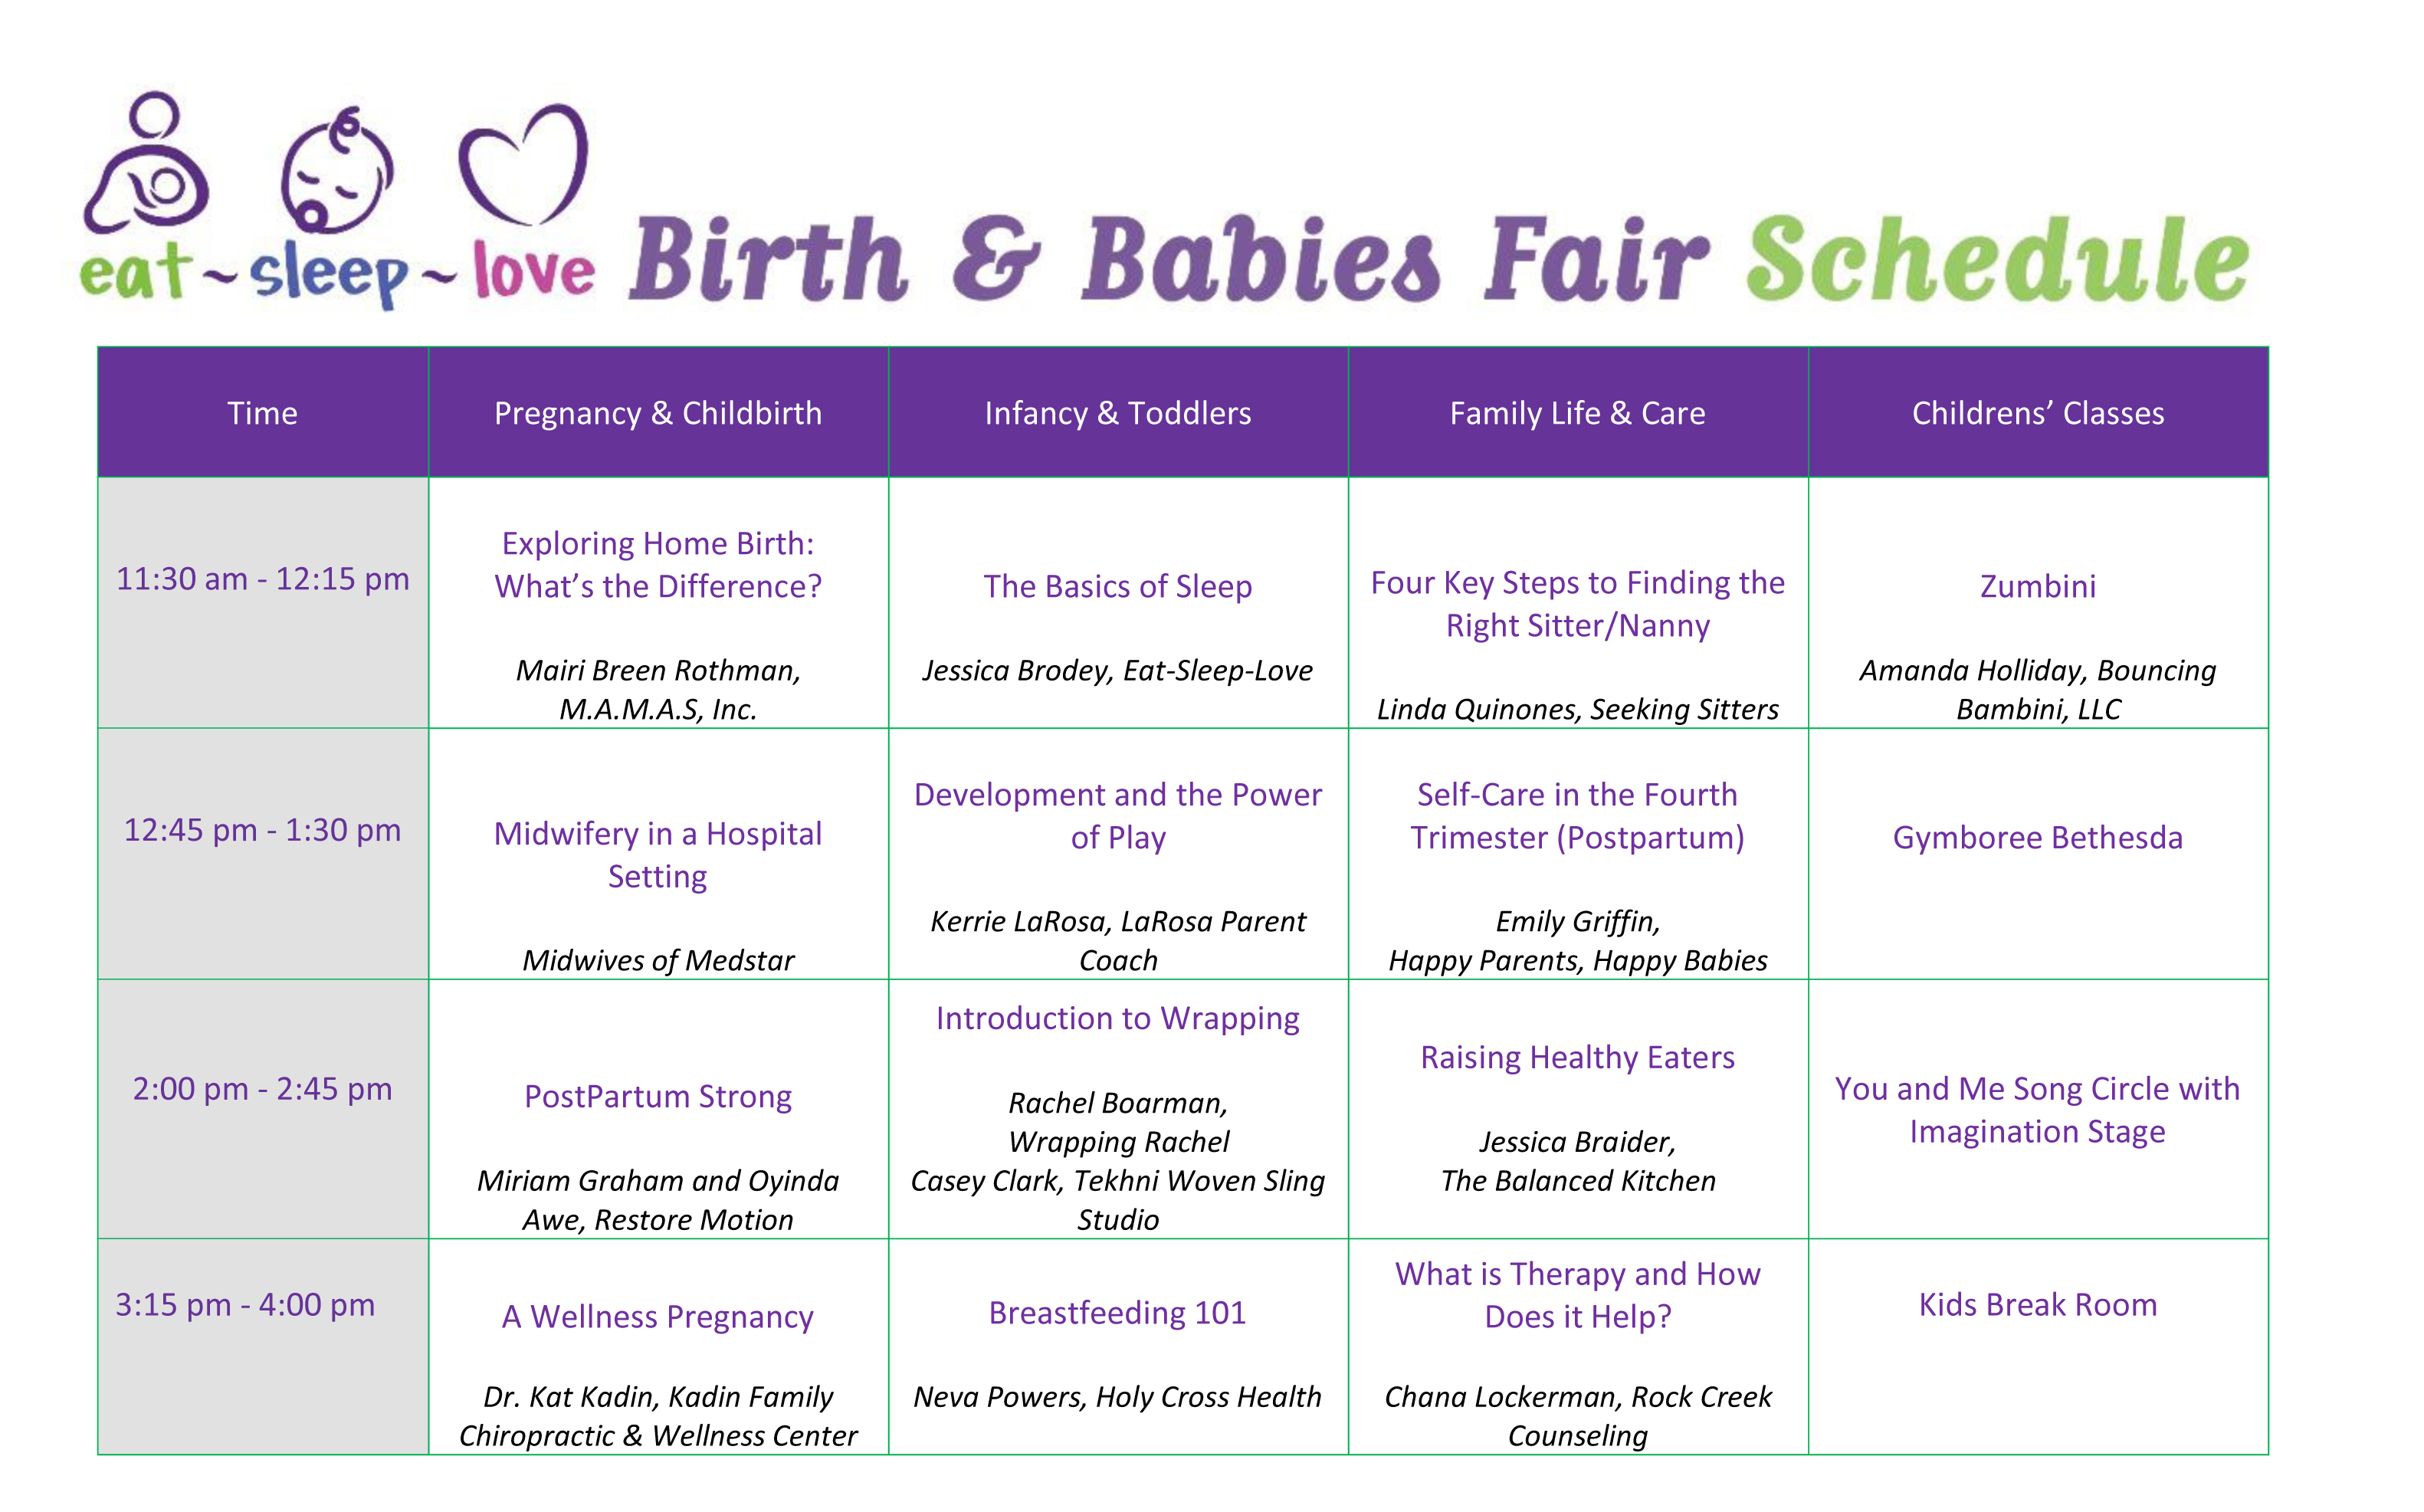 Eat-Sleep-Love Birth & Babies Fair Schedule in Chart Form. PDF link available below. Microsoft Word version available upon request.